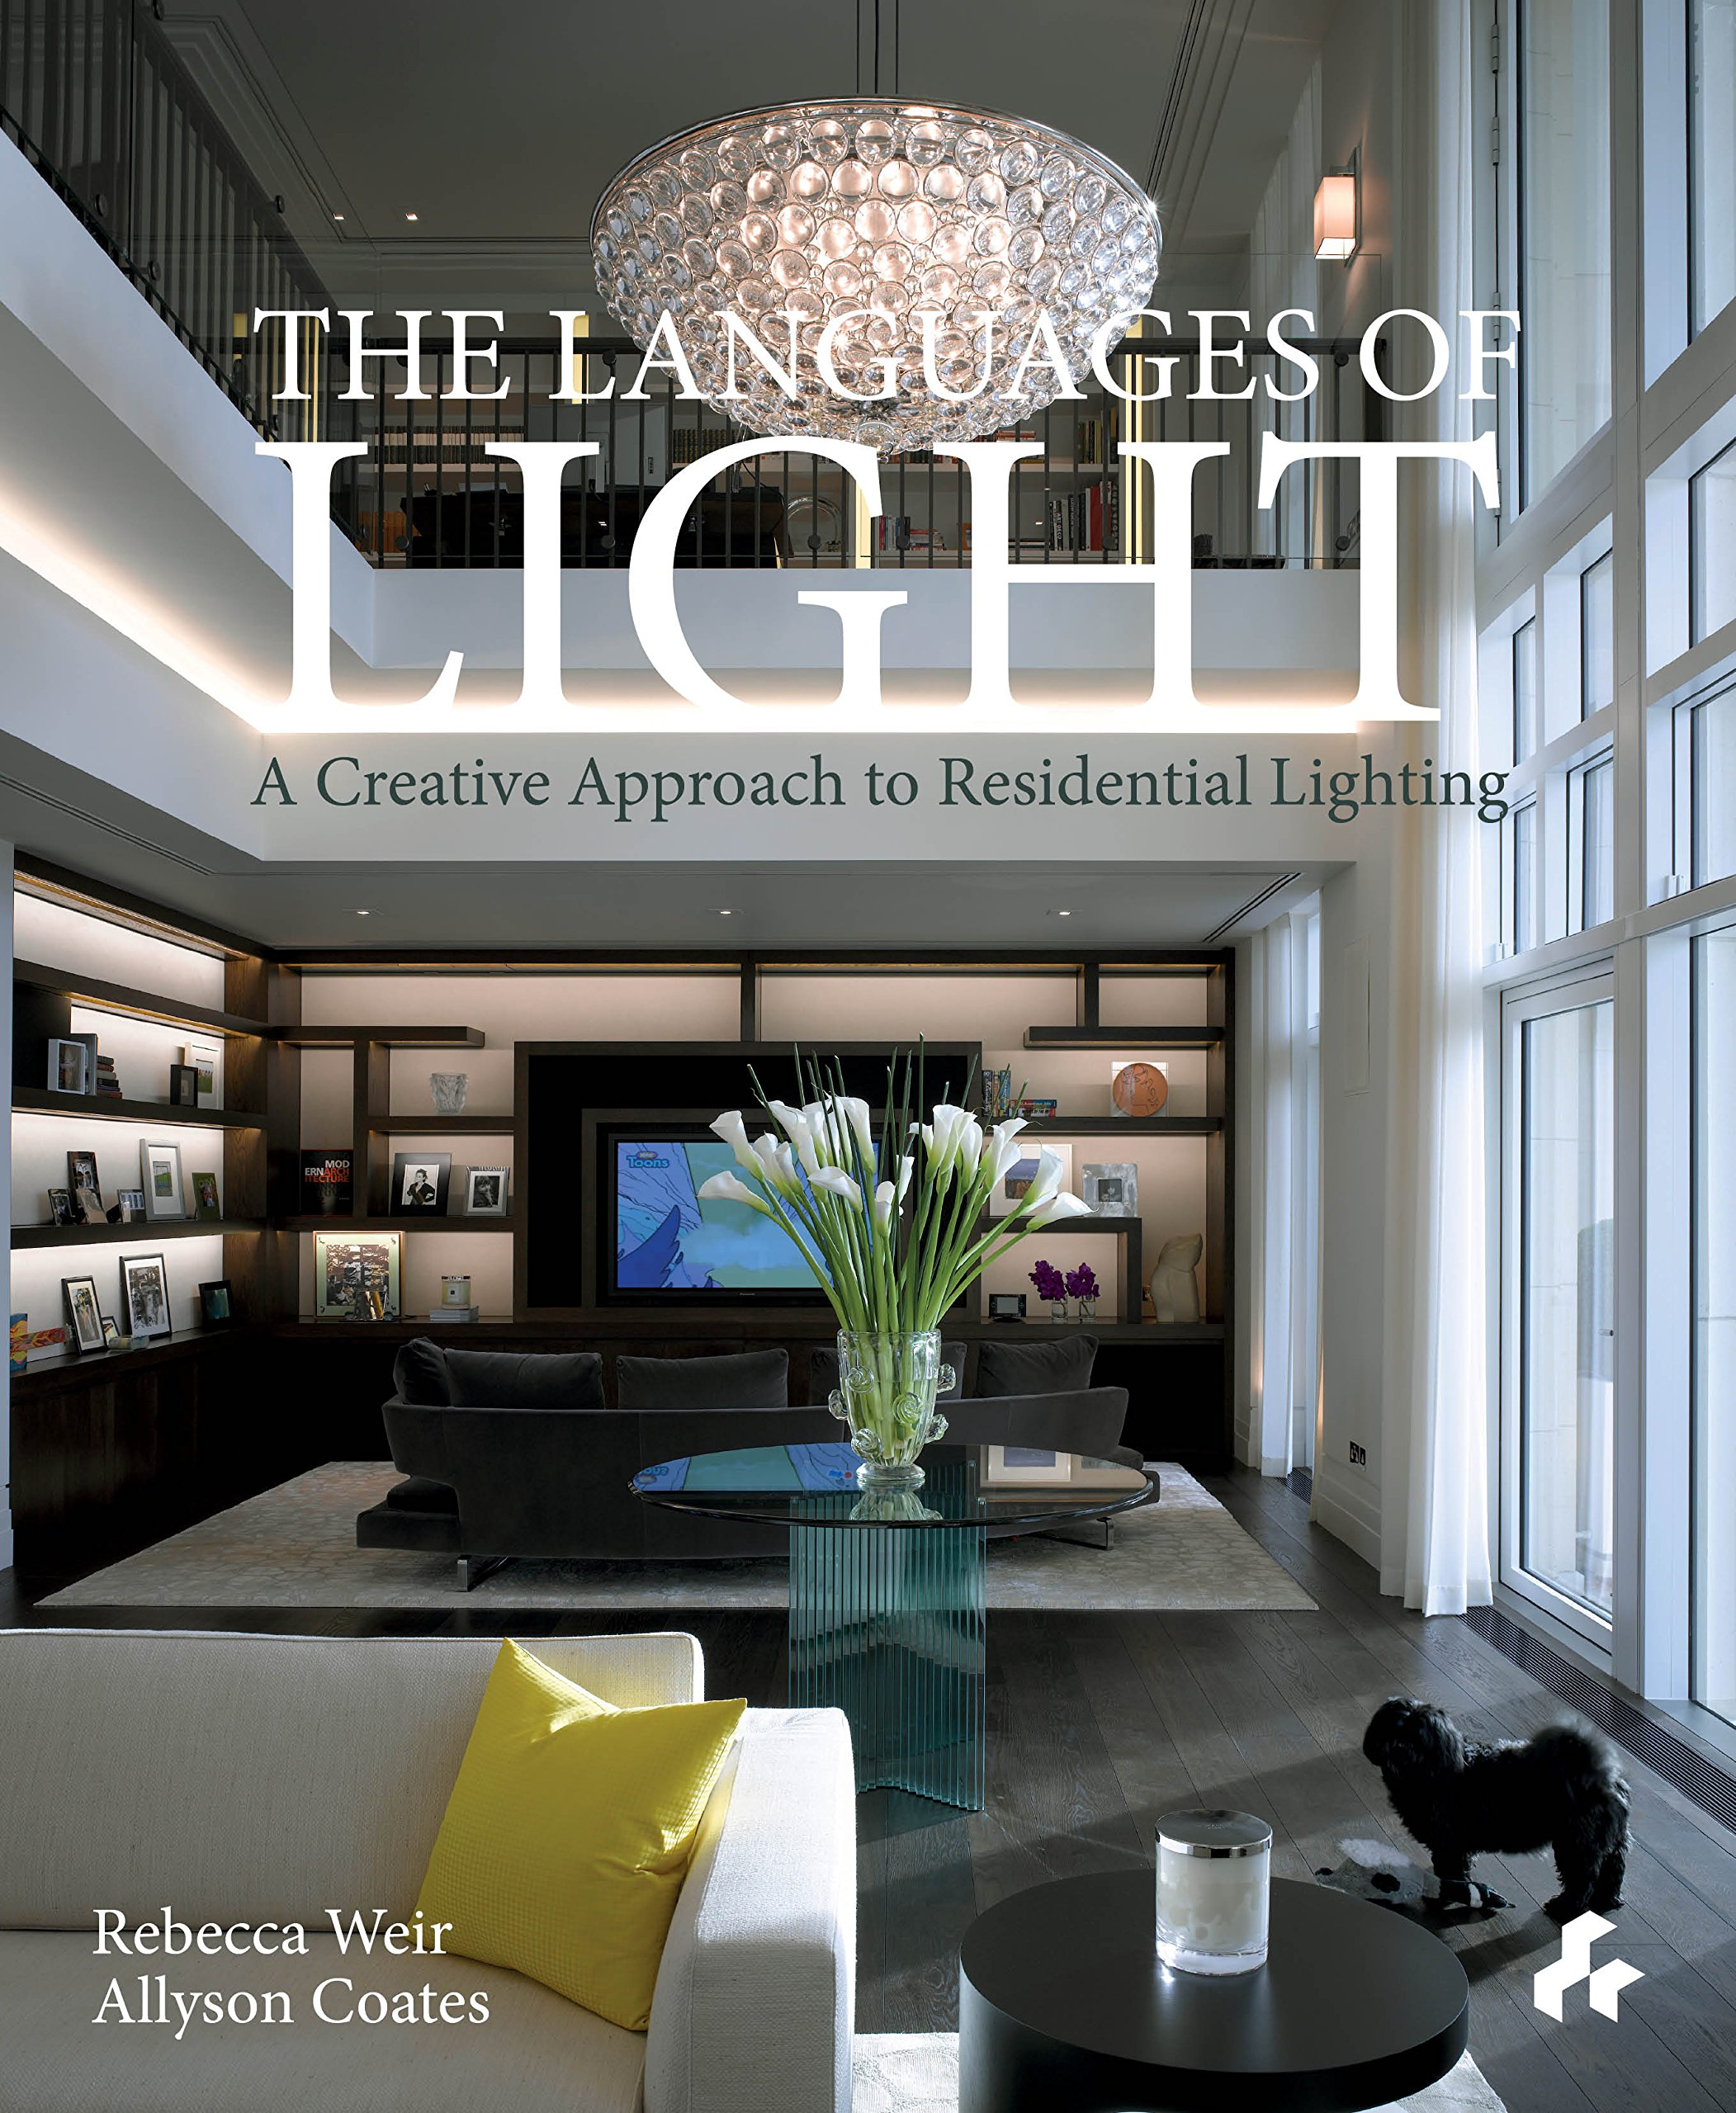 Languages of Light: A Creative Approach to Residental Lighting: Rebecca  Weir, Allyson Coates: 9781908967718: Amazon.com: Books